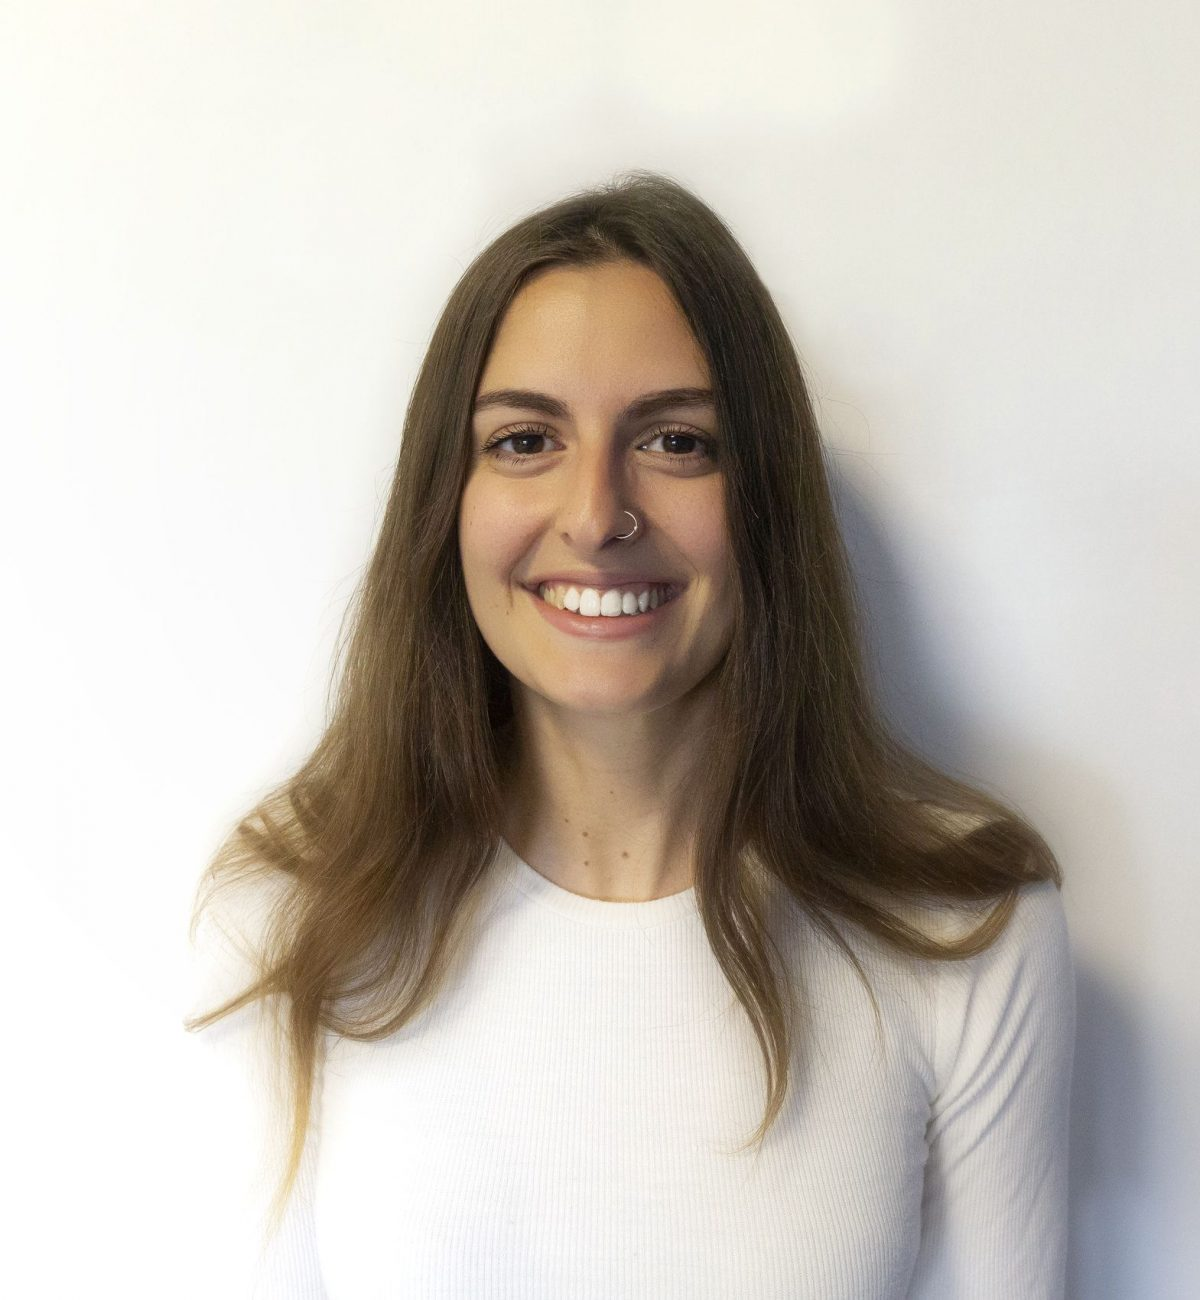 Welcome Rebecca Grieco as ESR 10 at the IMDEA Energy Institute in Madrid, Spain!